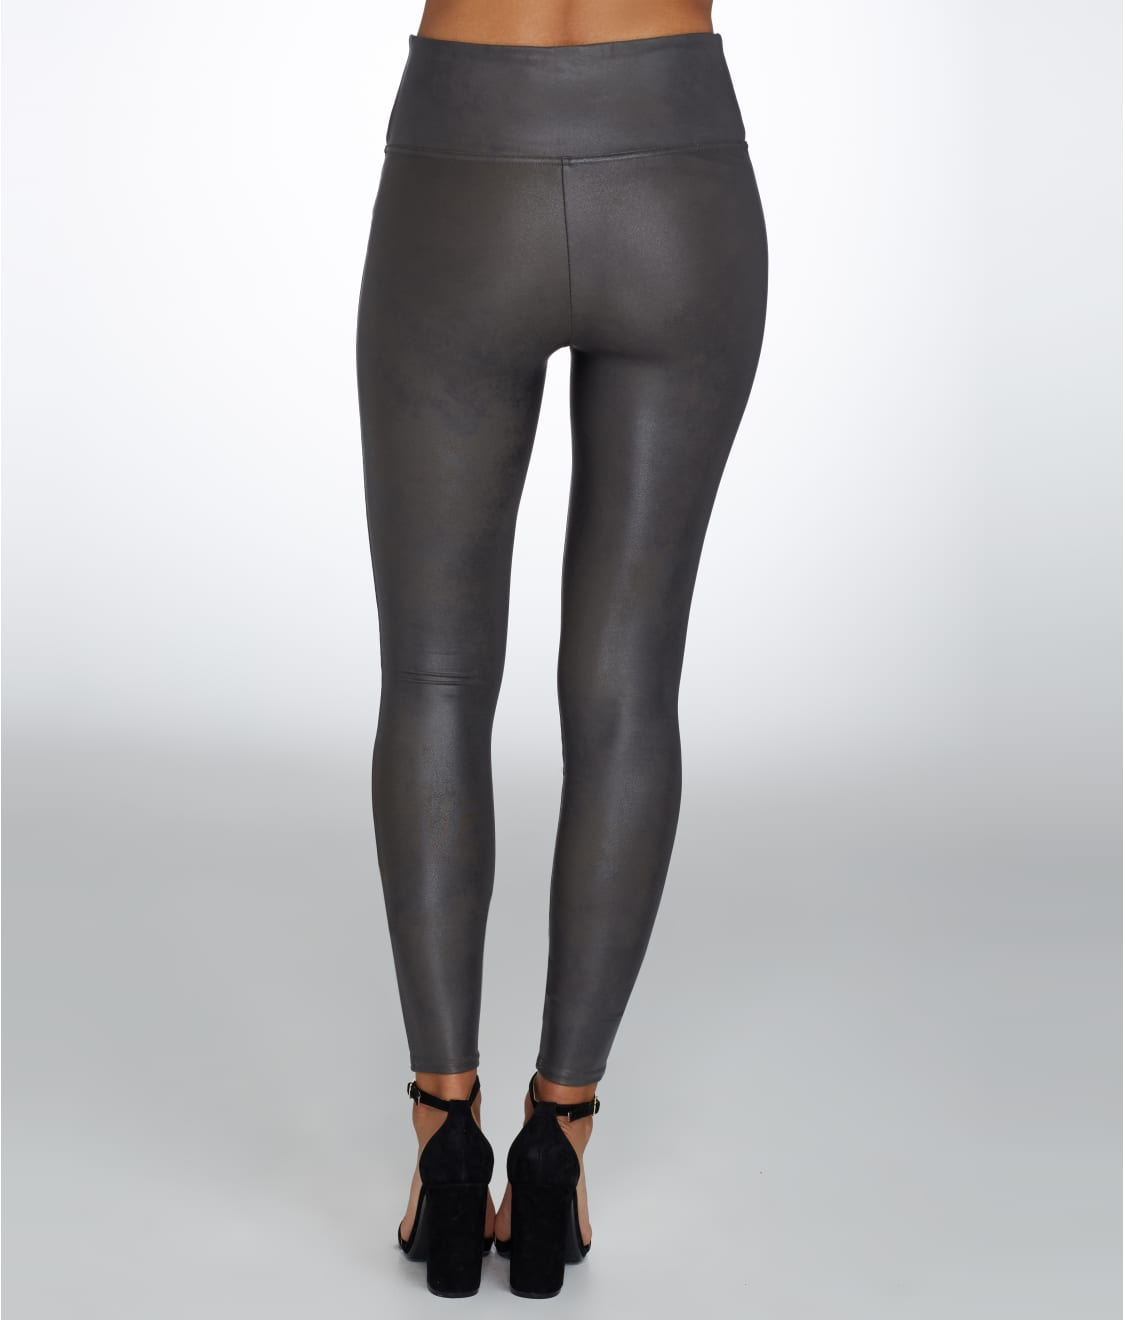 40fbe163d32 See Plus Size Ready-to-Wow Faux Leather Leggings in Gunmetal